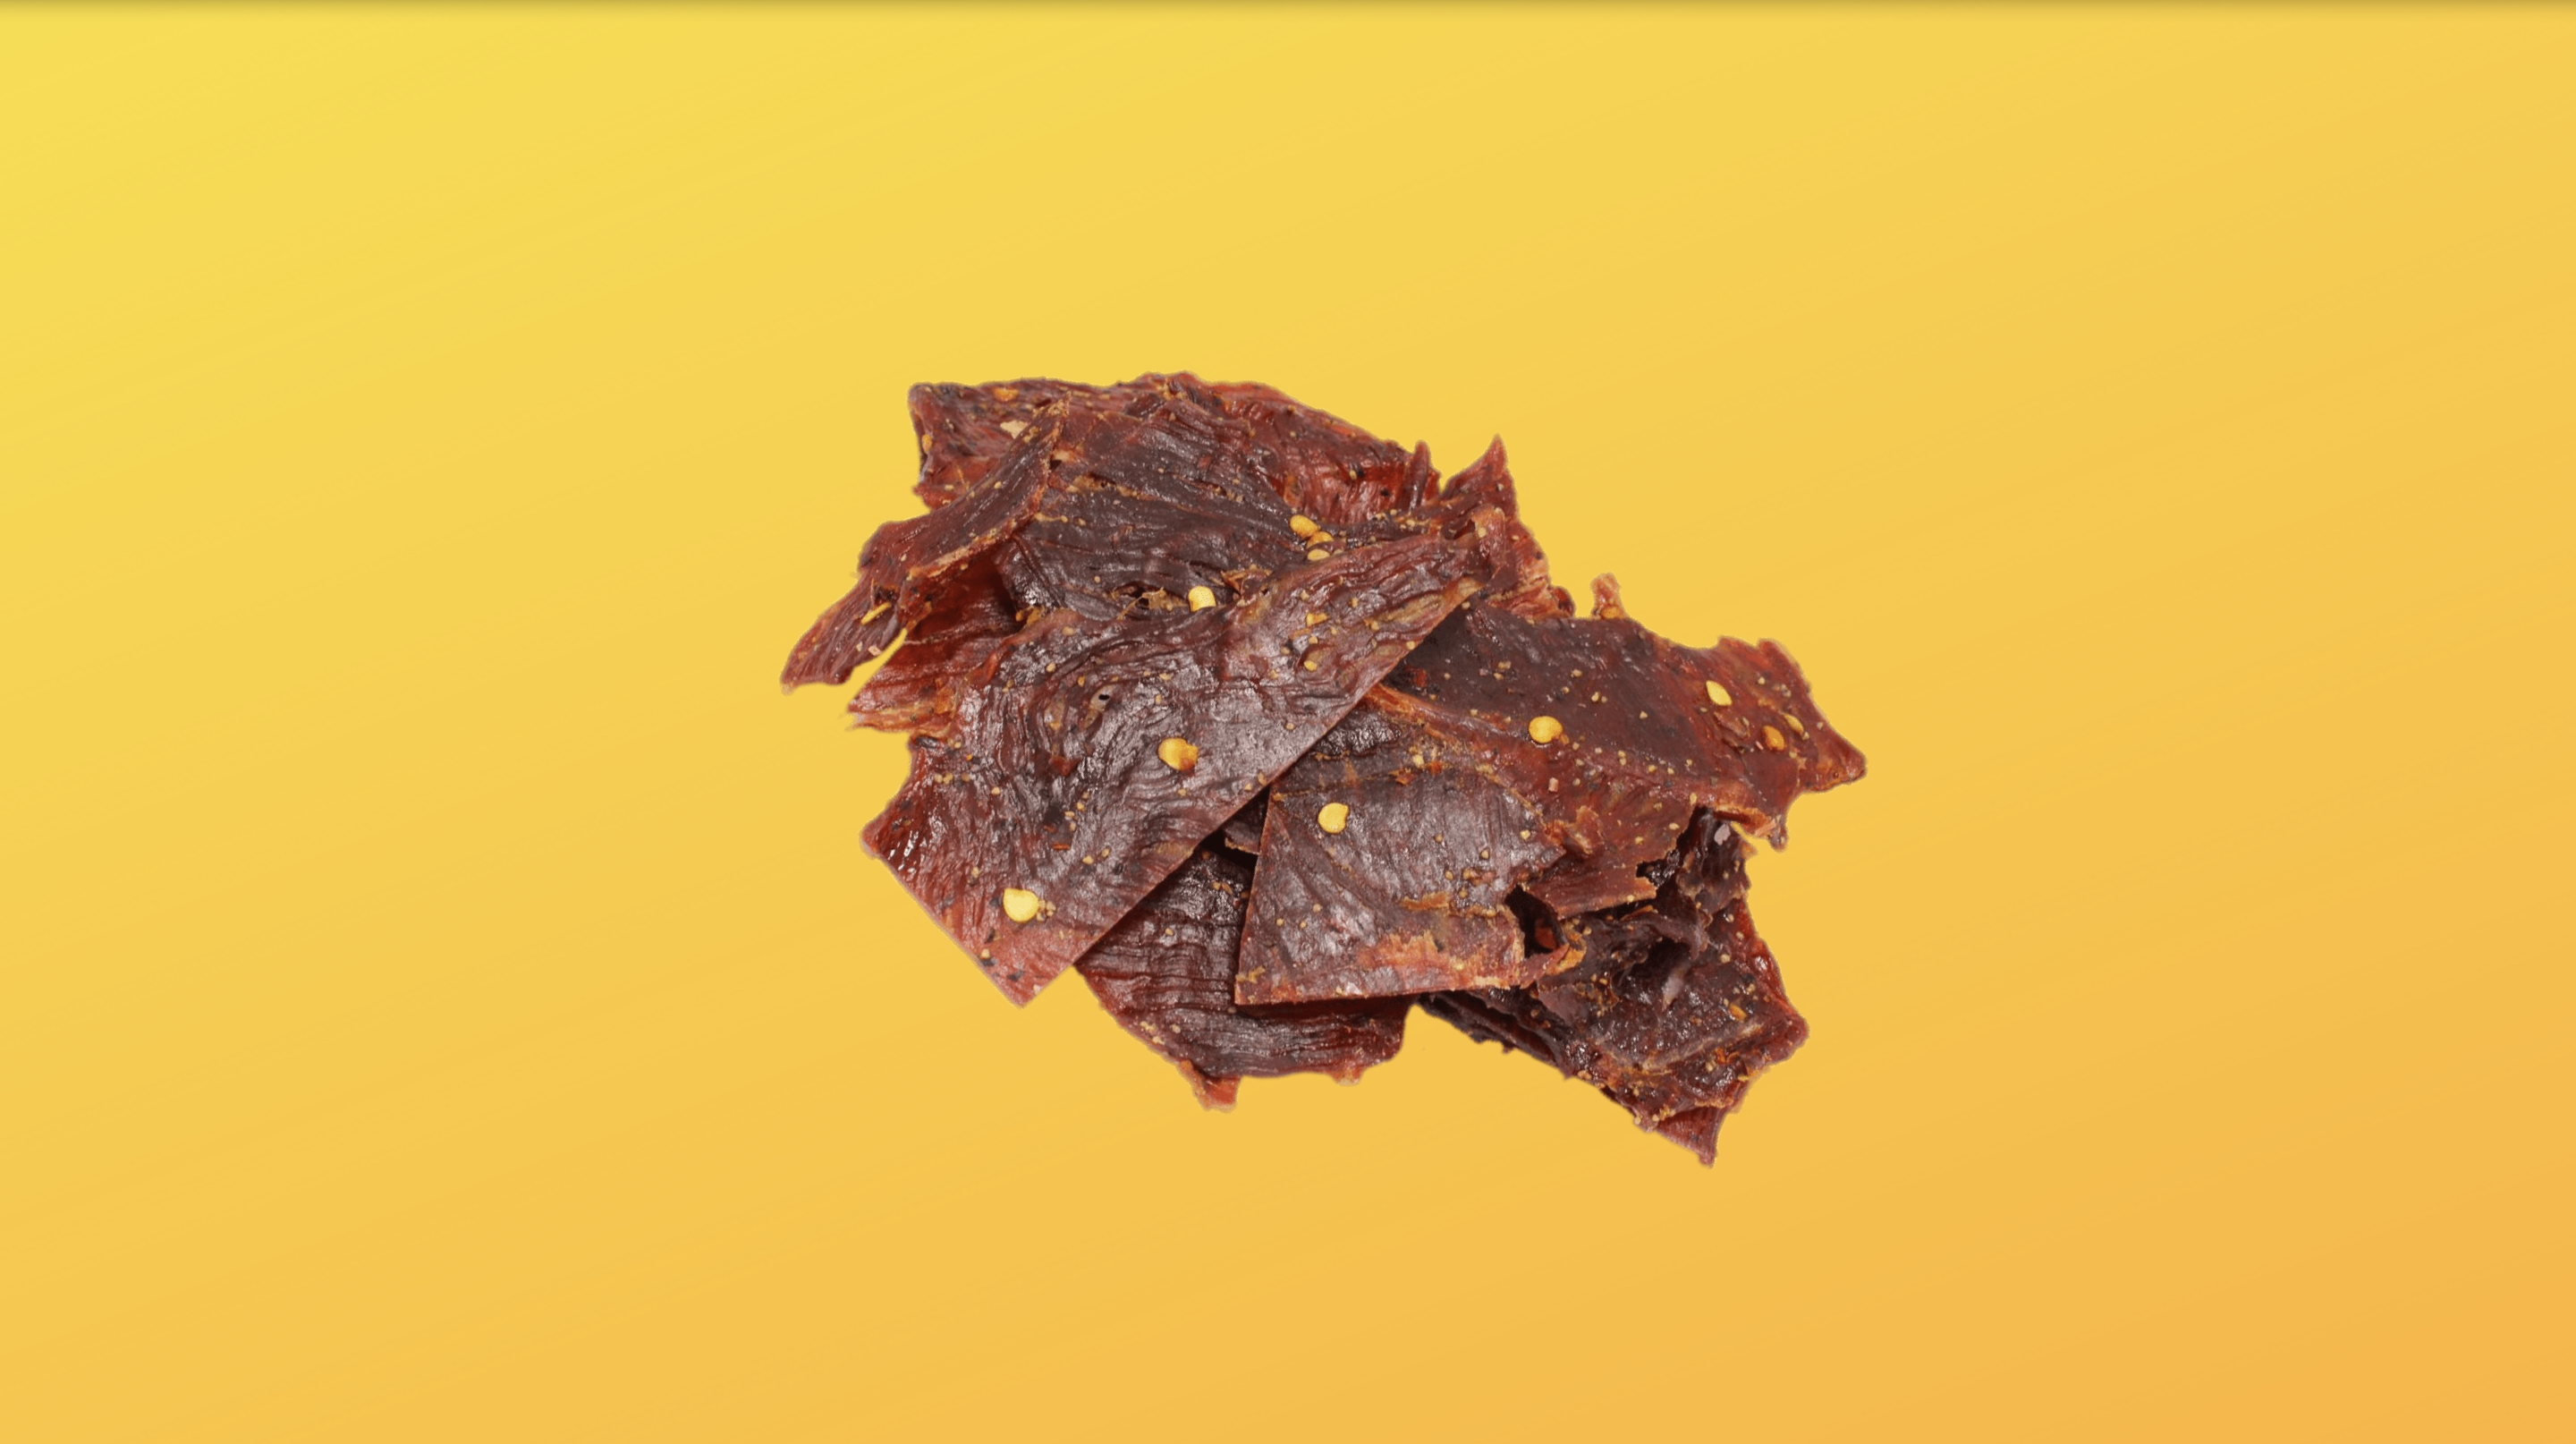 Singapore Malaysian Beef Jerky is Our New Favorite Snack